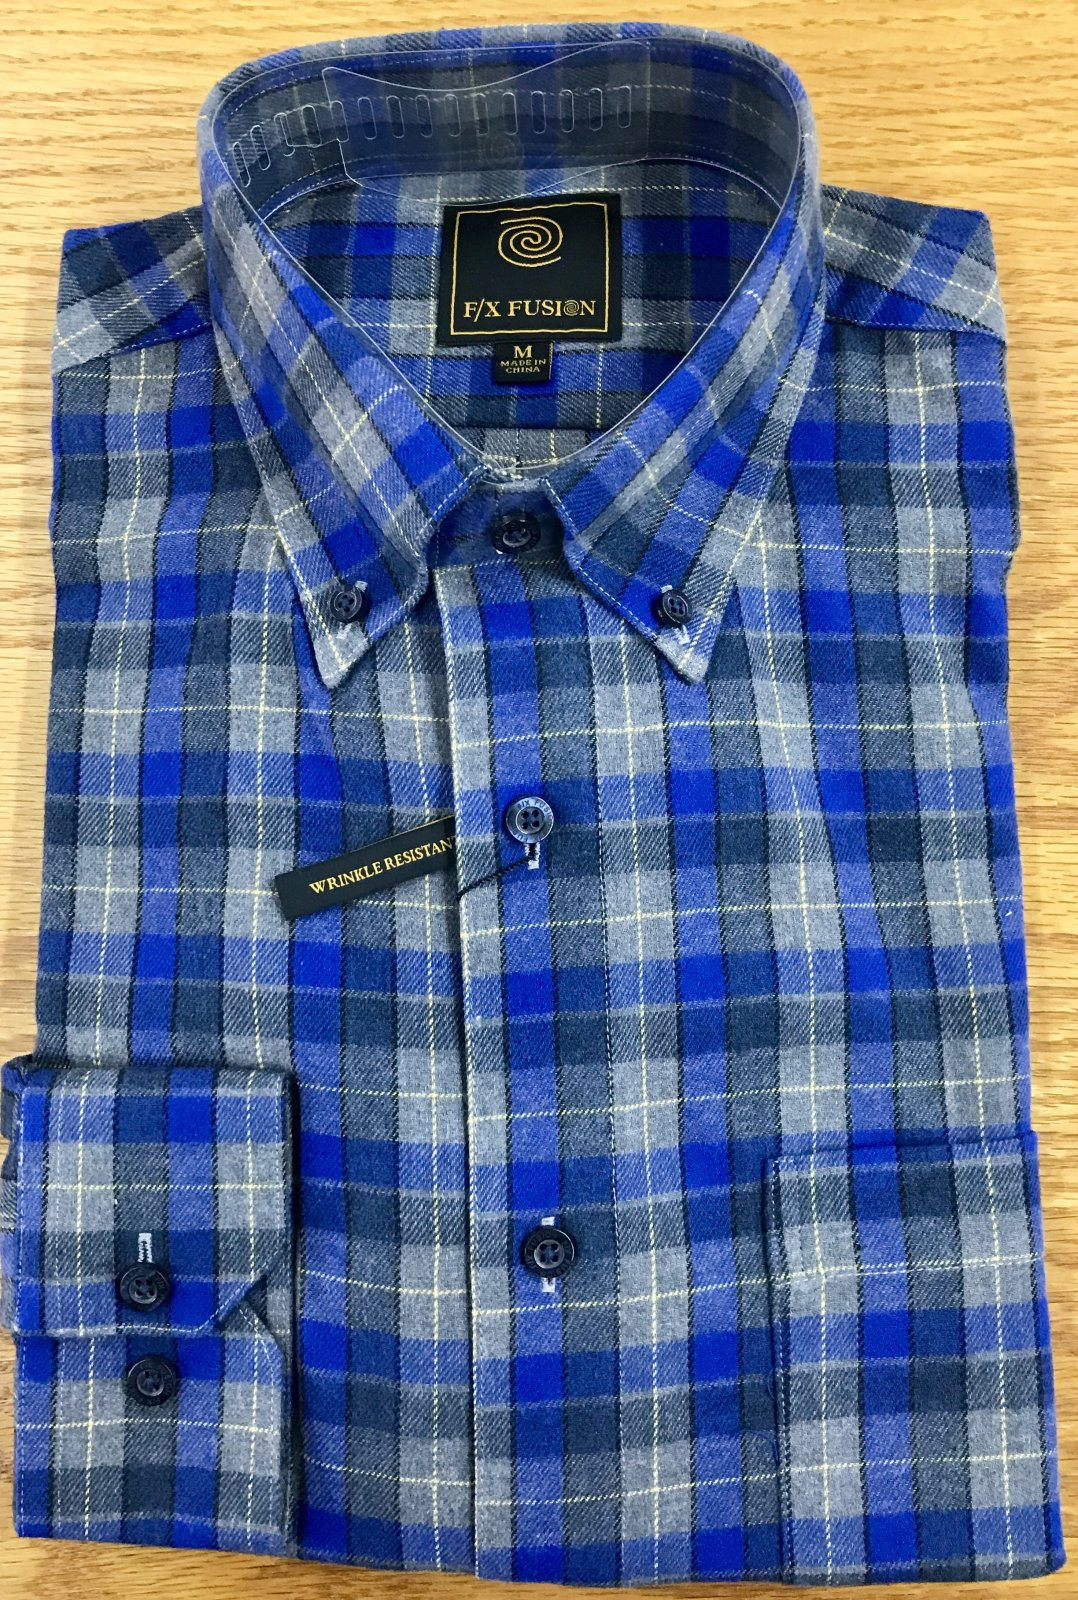 FX Fusion LS Royal Multi Check Flannel Shirt